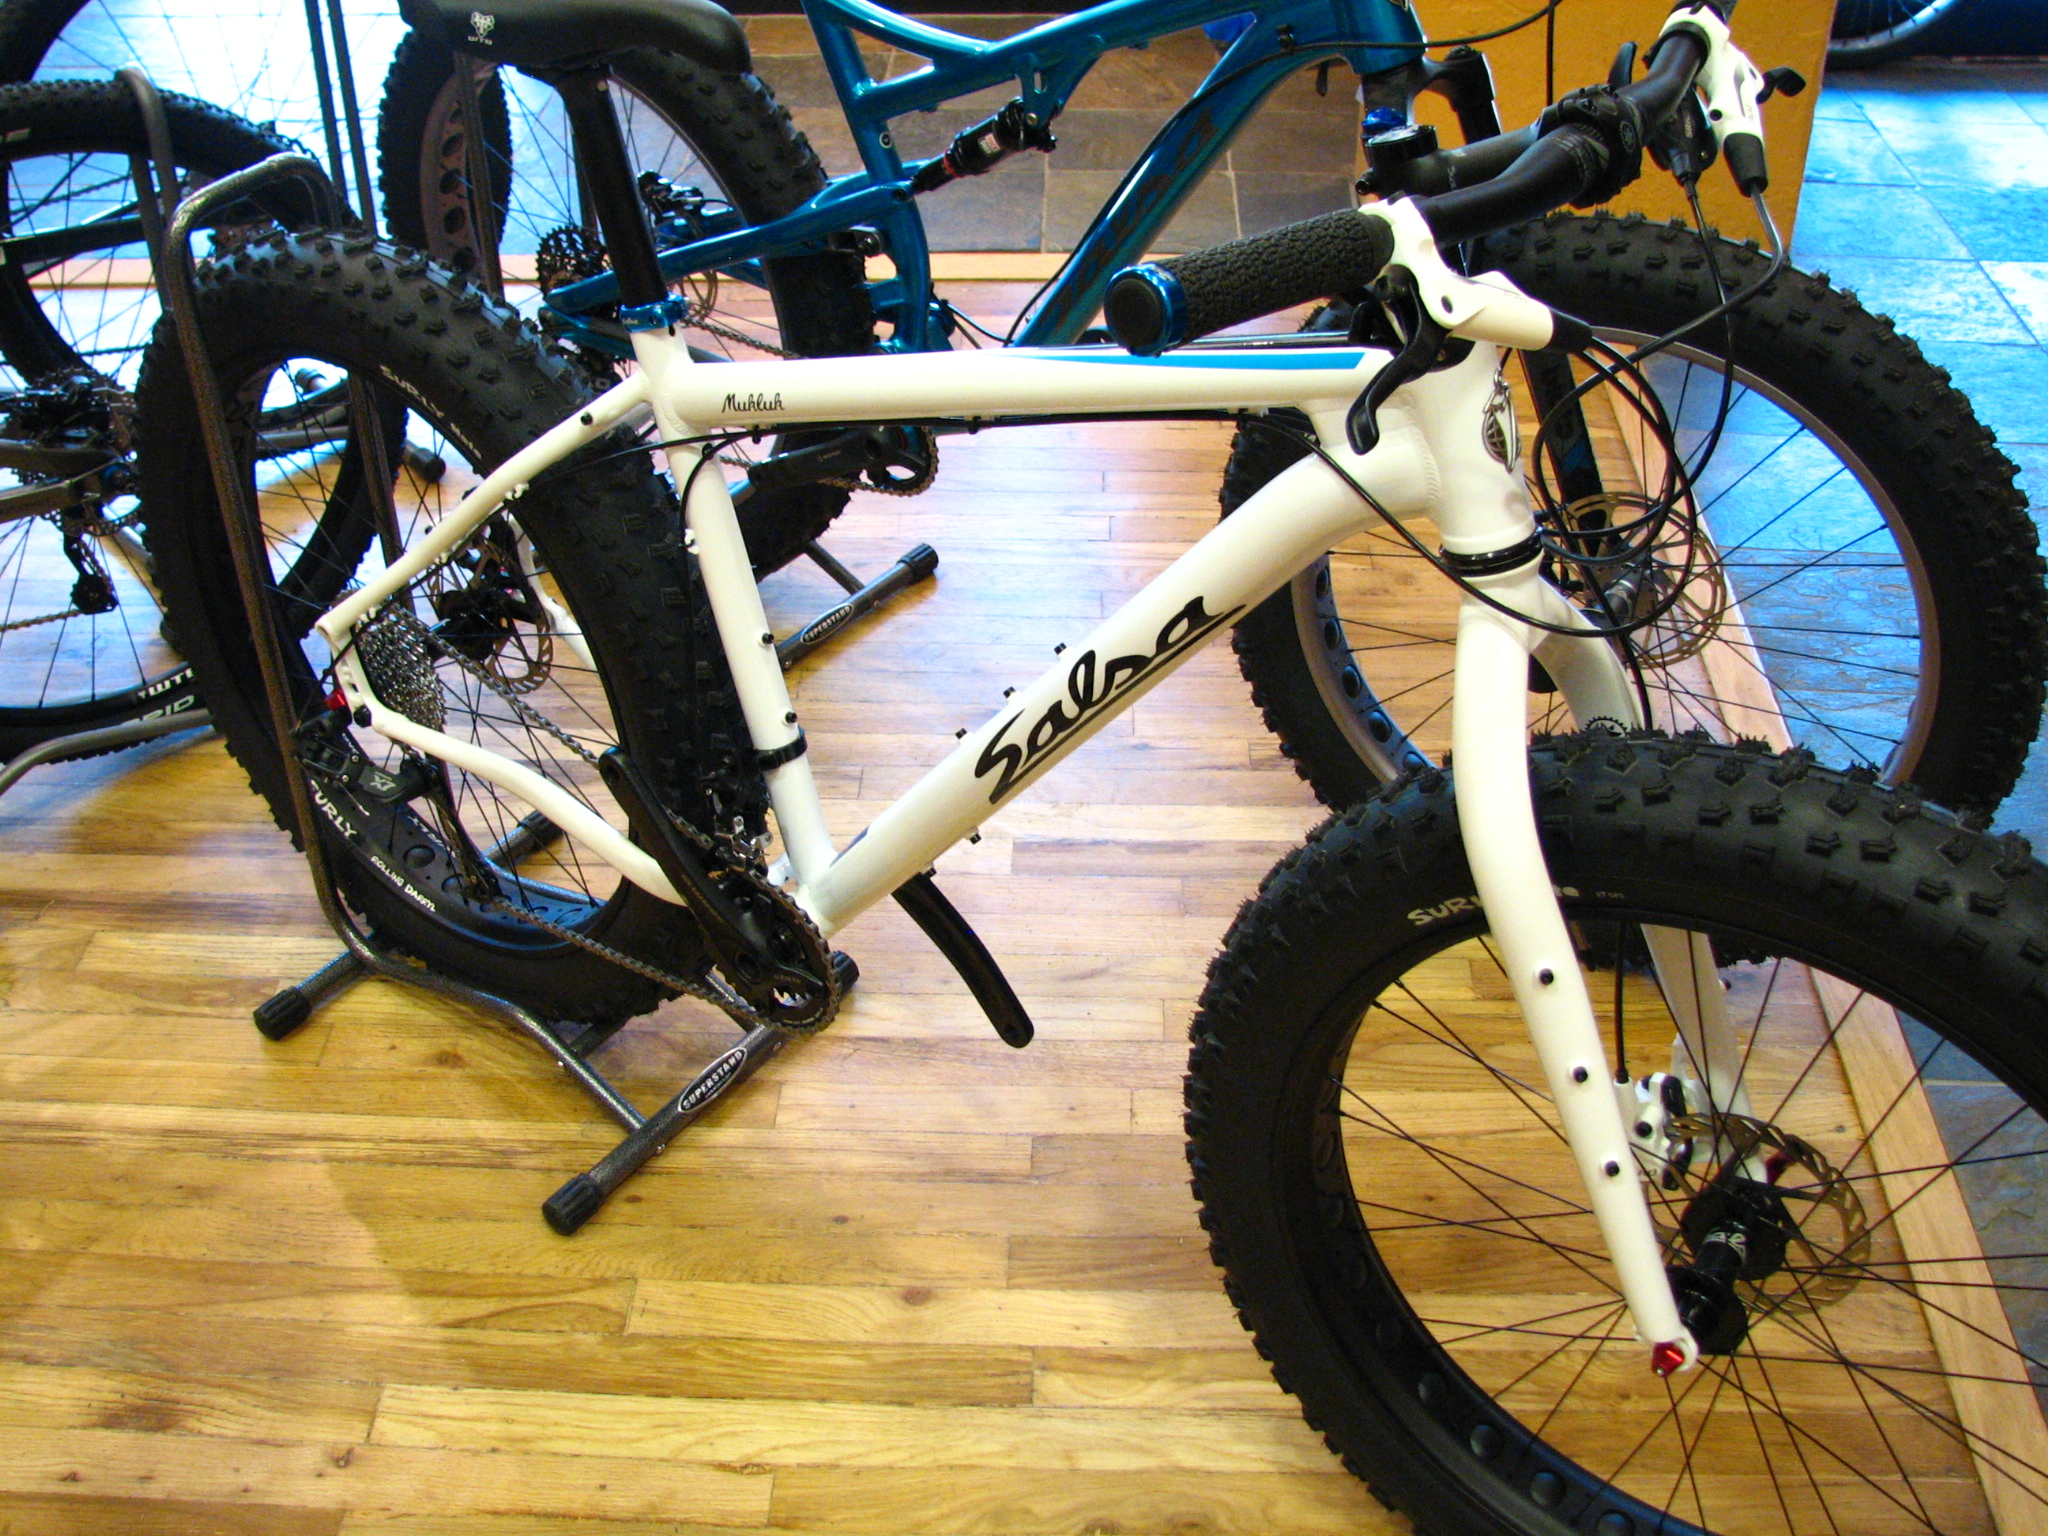 2015 Salsa Mukluk 3 fatbikes: Were $1900, now $1750 (and the 2016 version has bumped up to $2000)